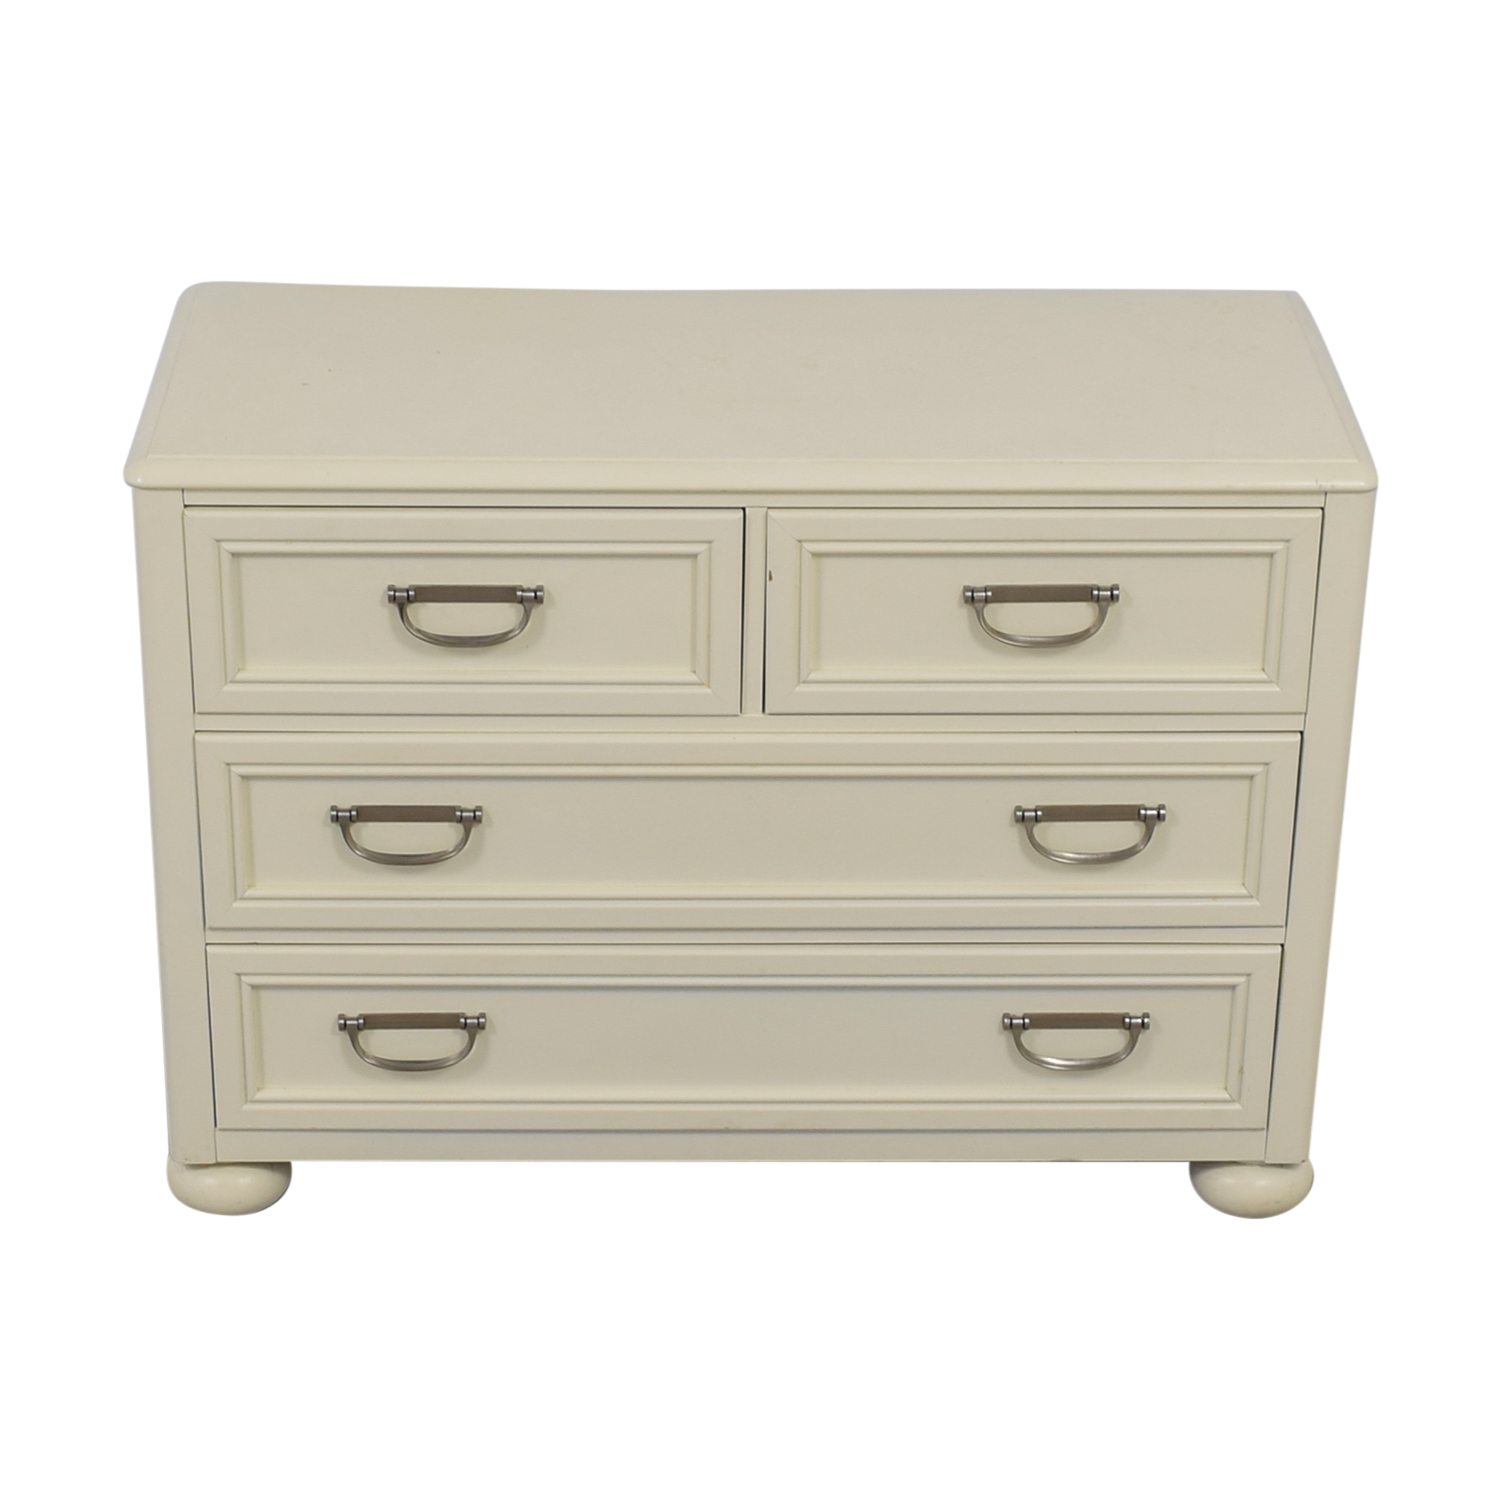 White Four-Drawer Dresser white